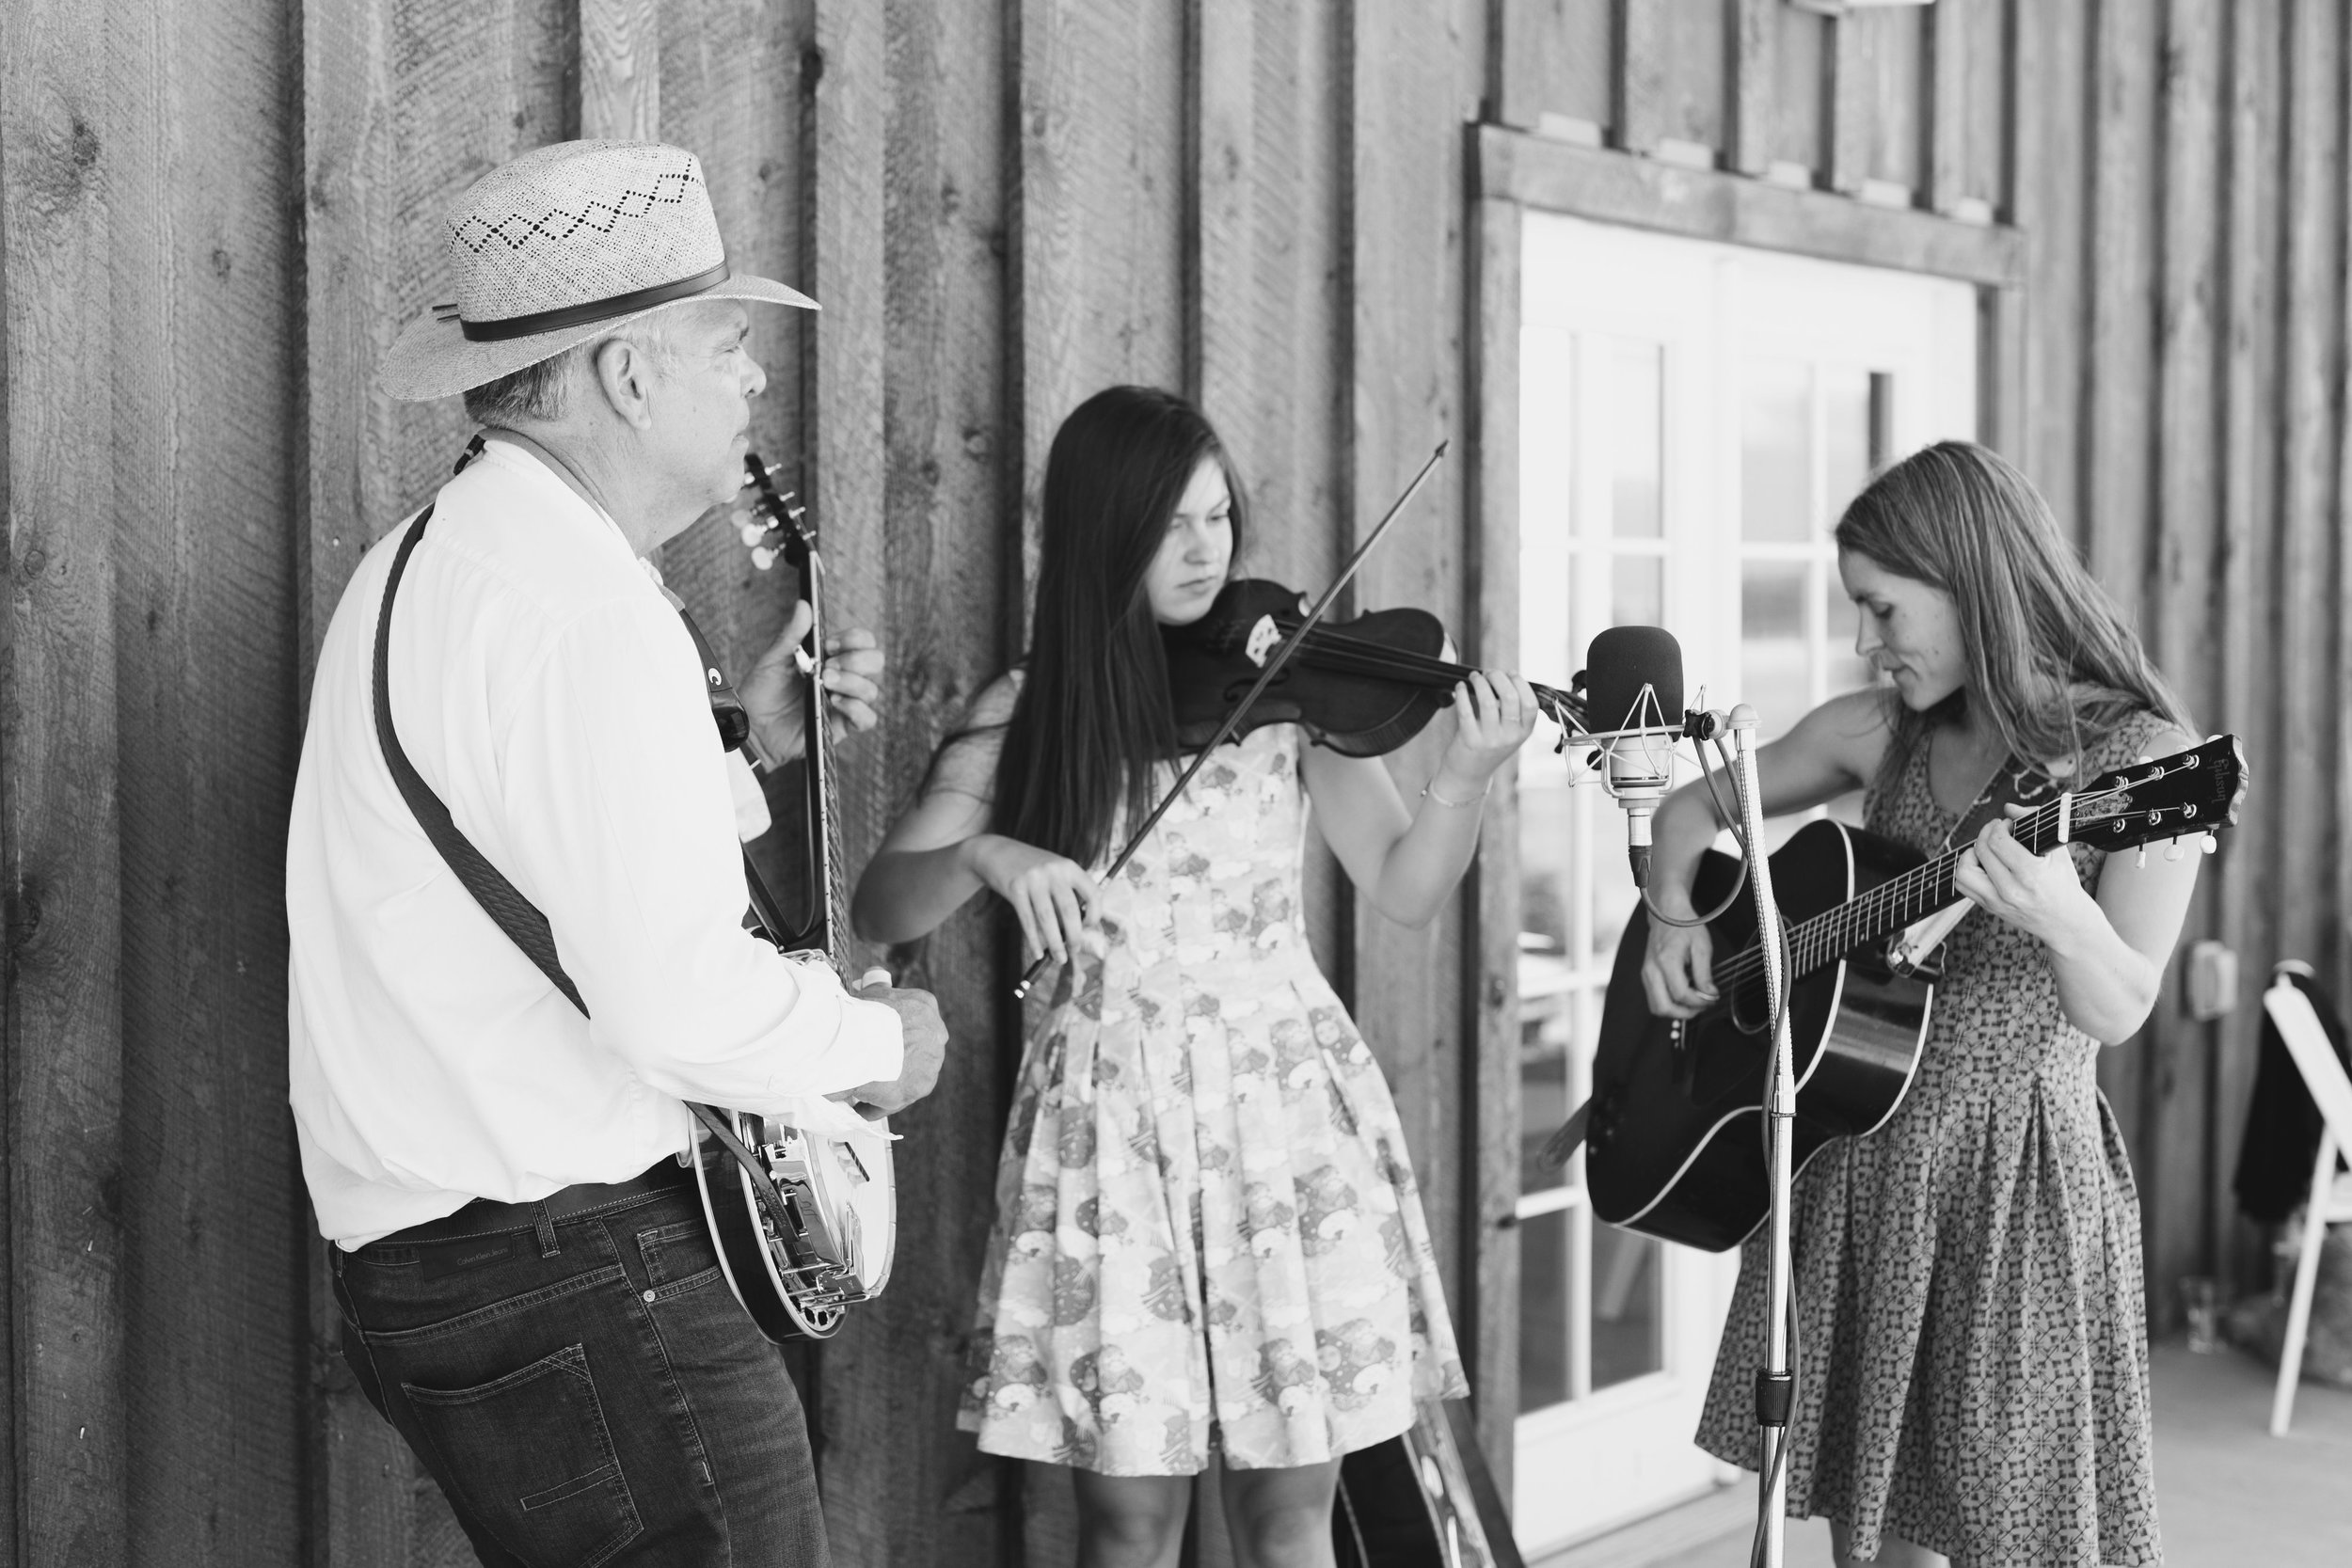 Clare Menehan and her band kept guests entertained with live music on the barn's patios. Photo By Dina Remi Studios.